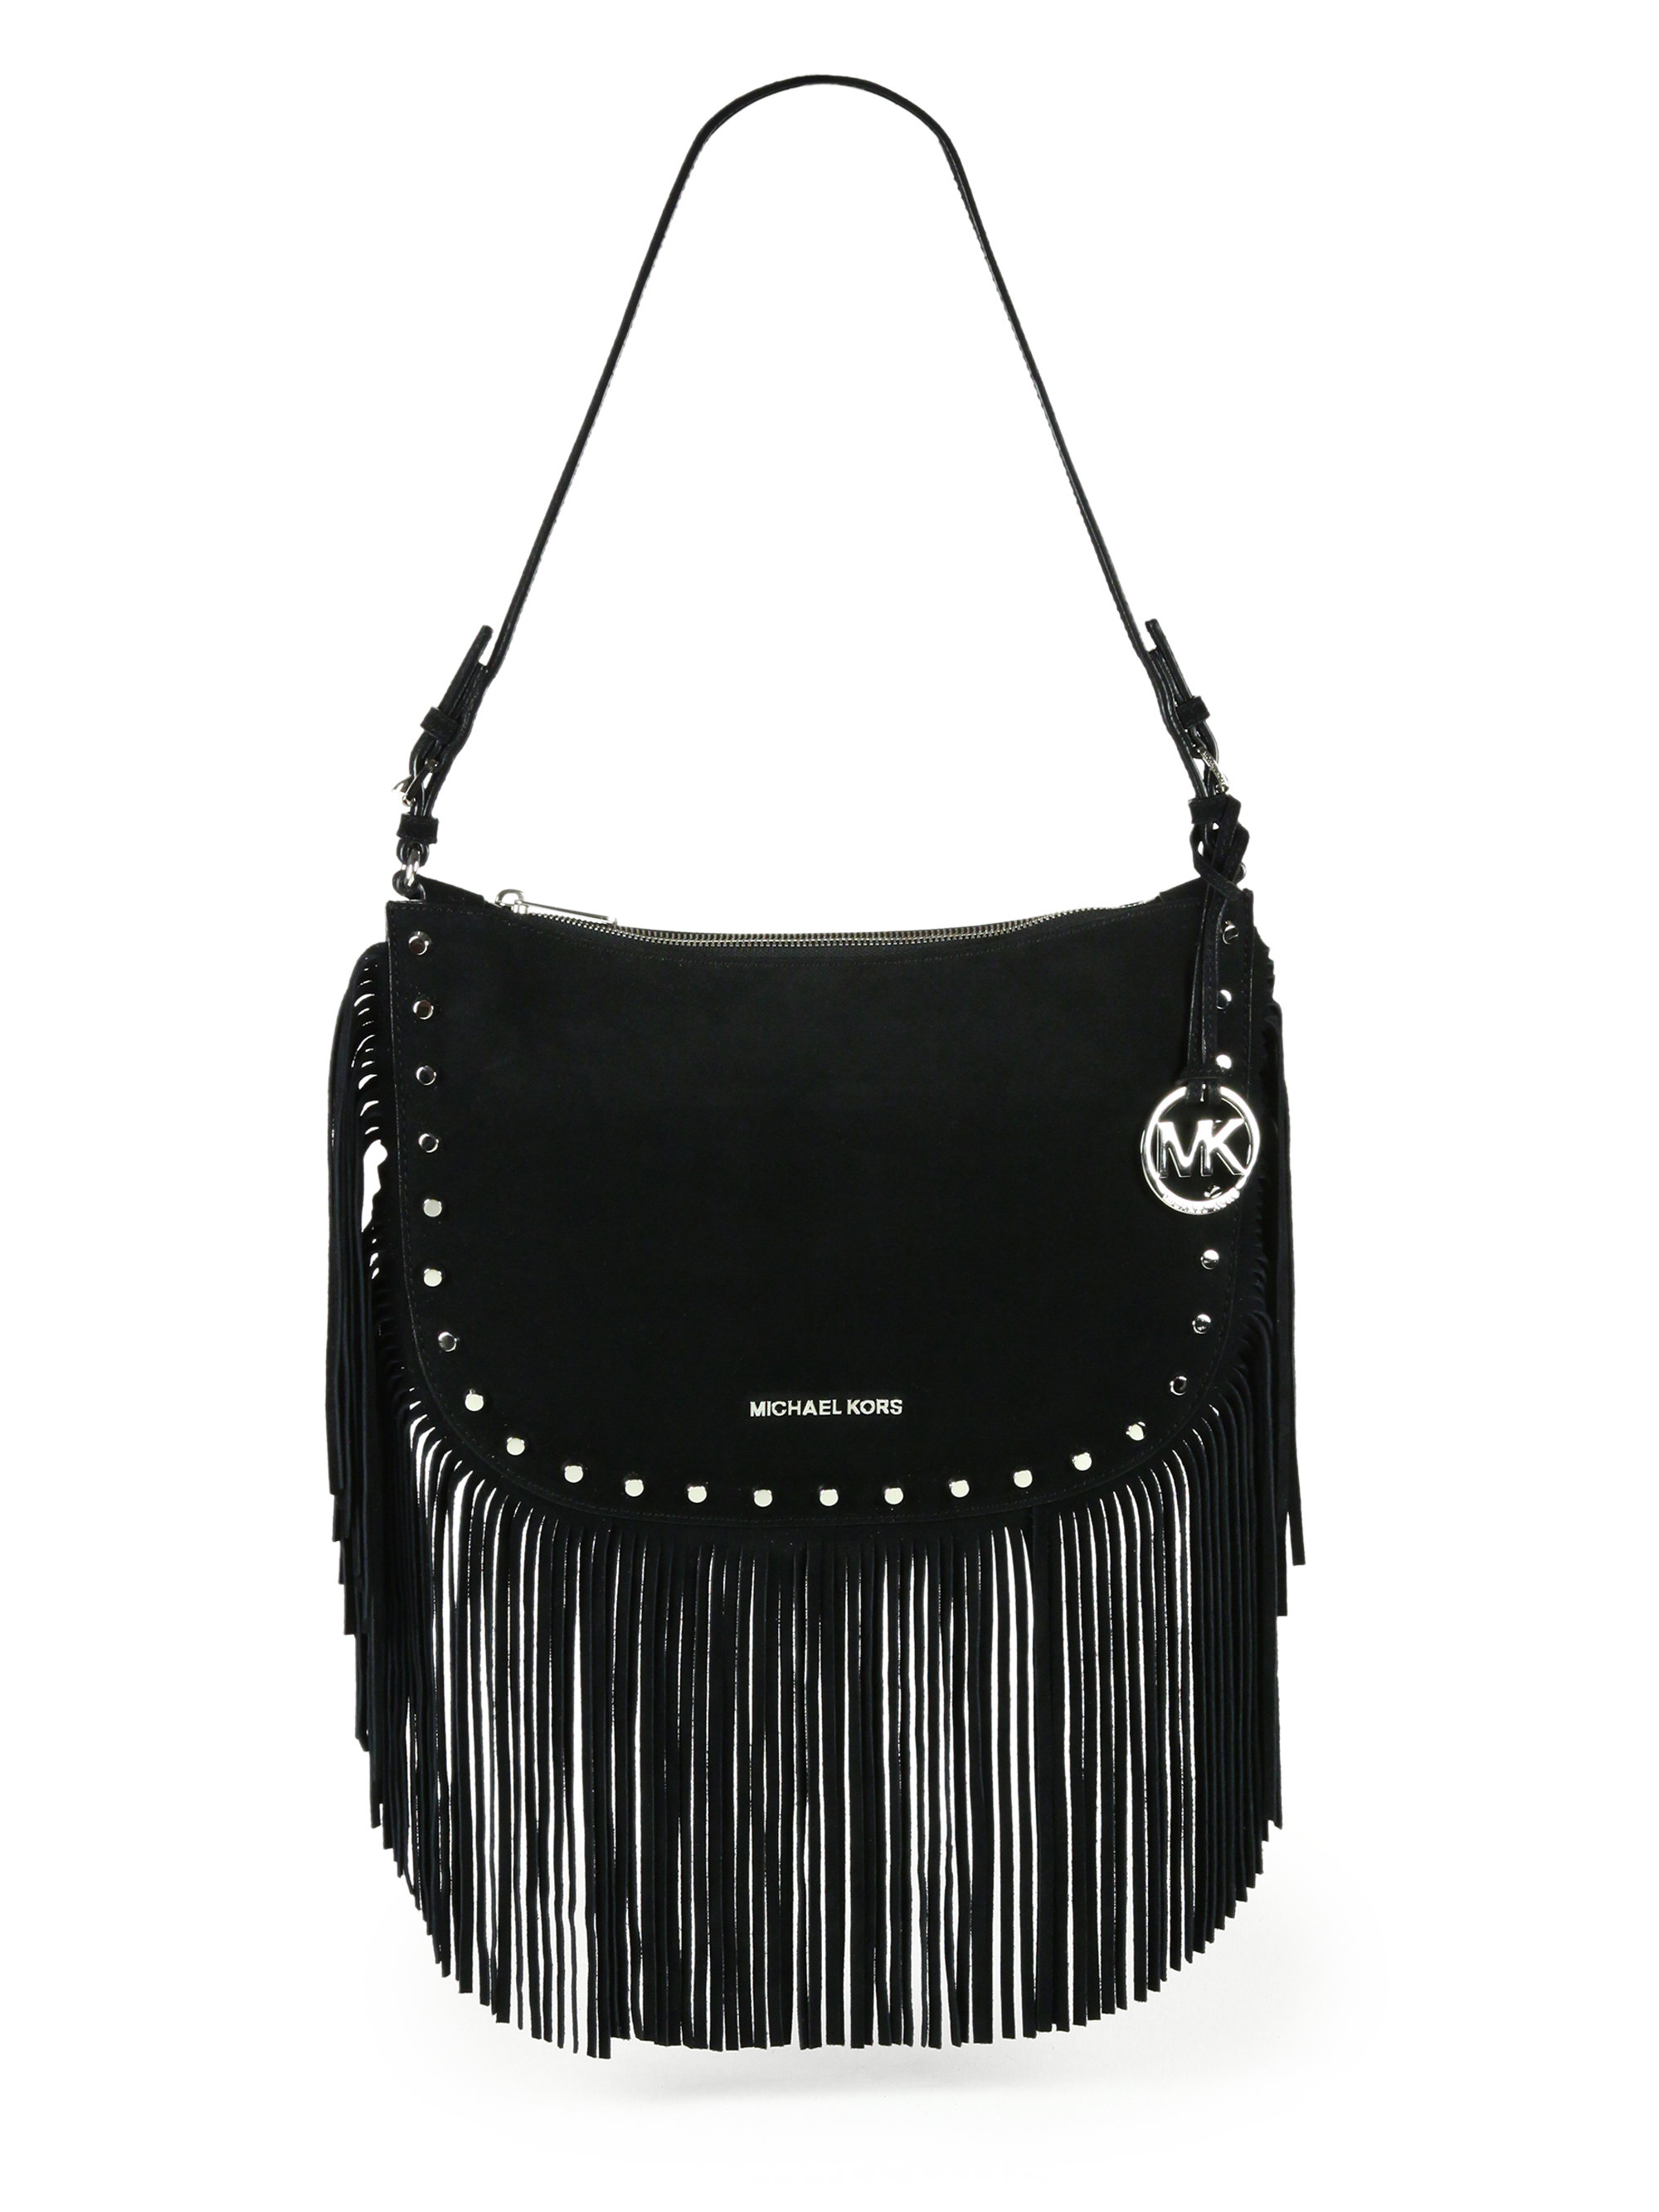 77f2120cfb157d Mk Black With Fringe Crossbody Bags. Michael Kors BILLY Large Fringe  Messenger ...